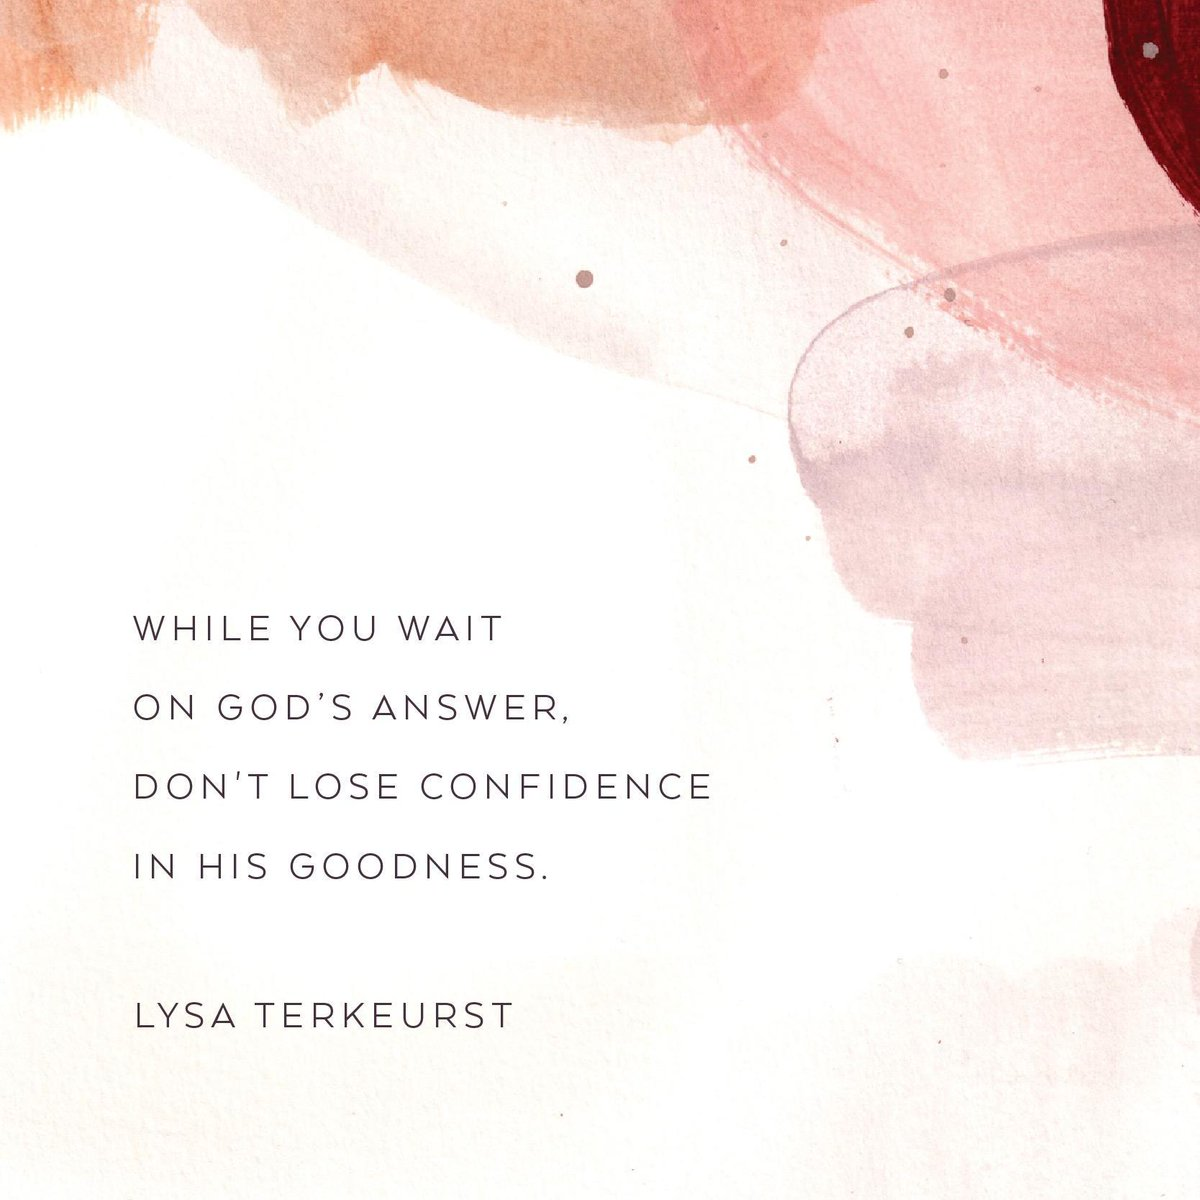 I know how hard it can be to wait on God when you want to move forward and you're seeking His guidance. But while you wait on His answer, dont lose confidence in His goodness. Be strong. Be patient. Cling to His Word. And keep trusting in His unfailing love.